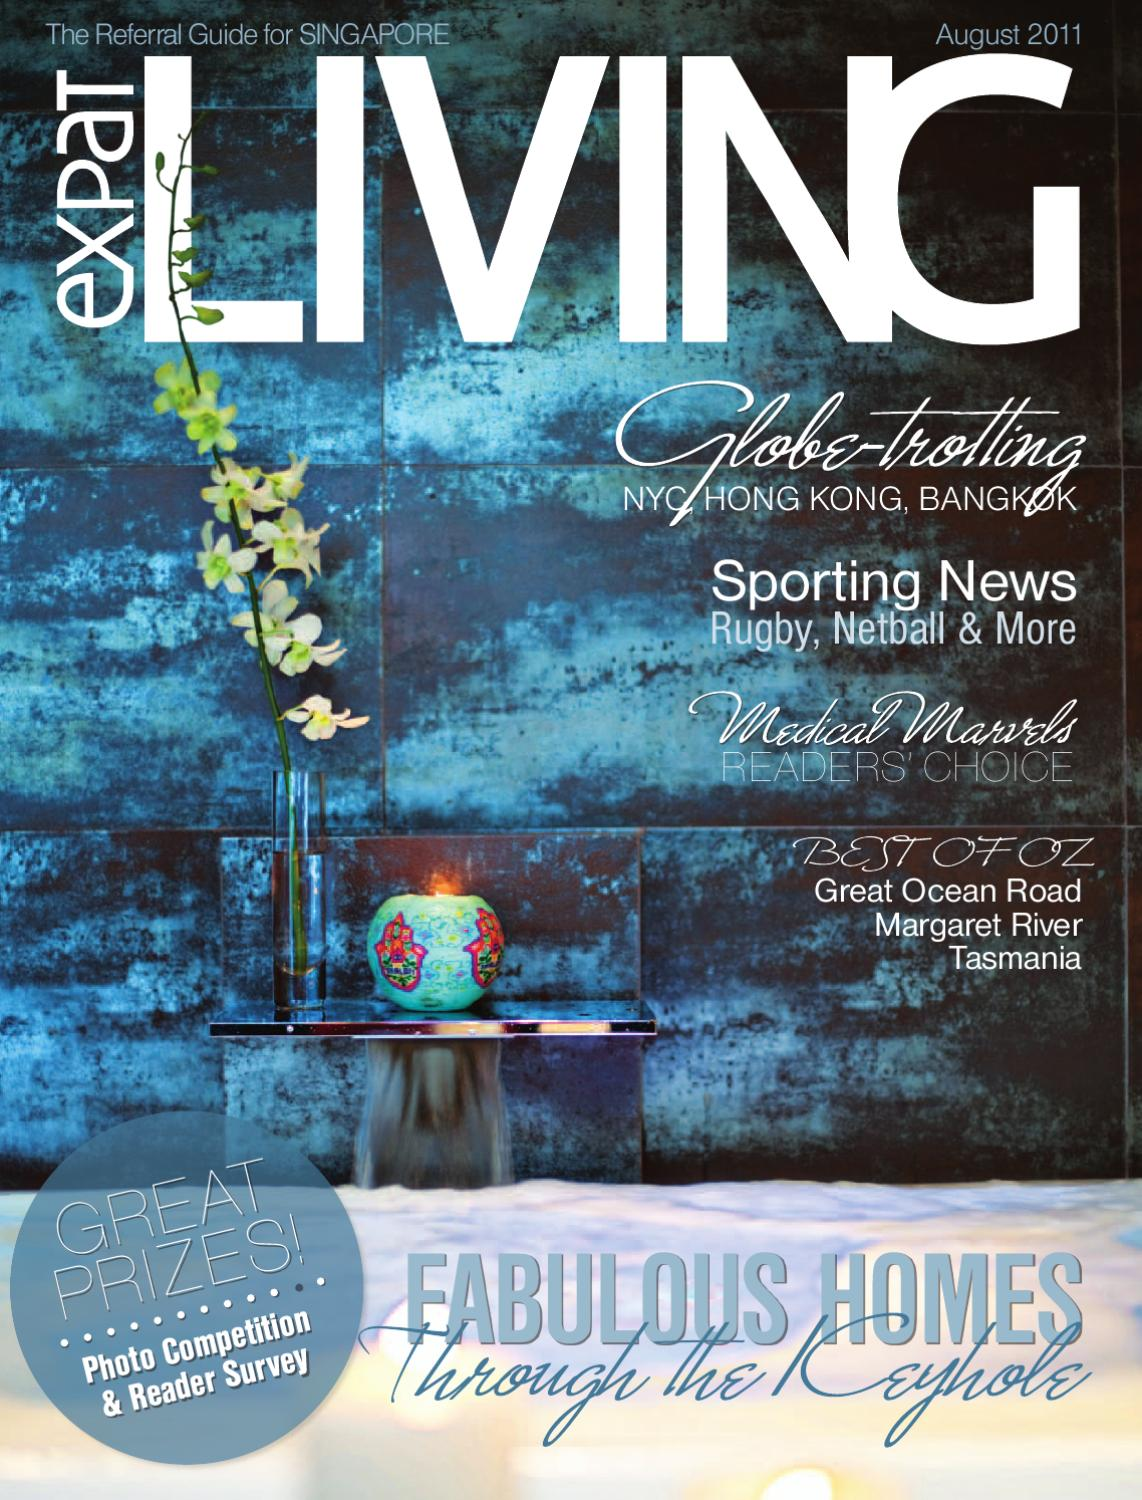 Expat Living Singapore August 2011 - Issue 109 by Expat Living ...